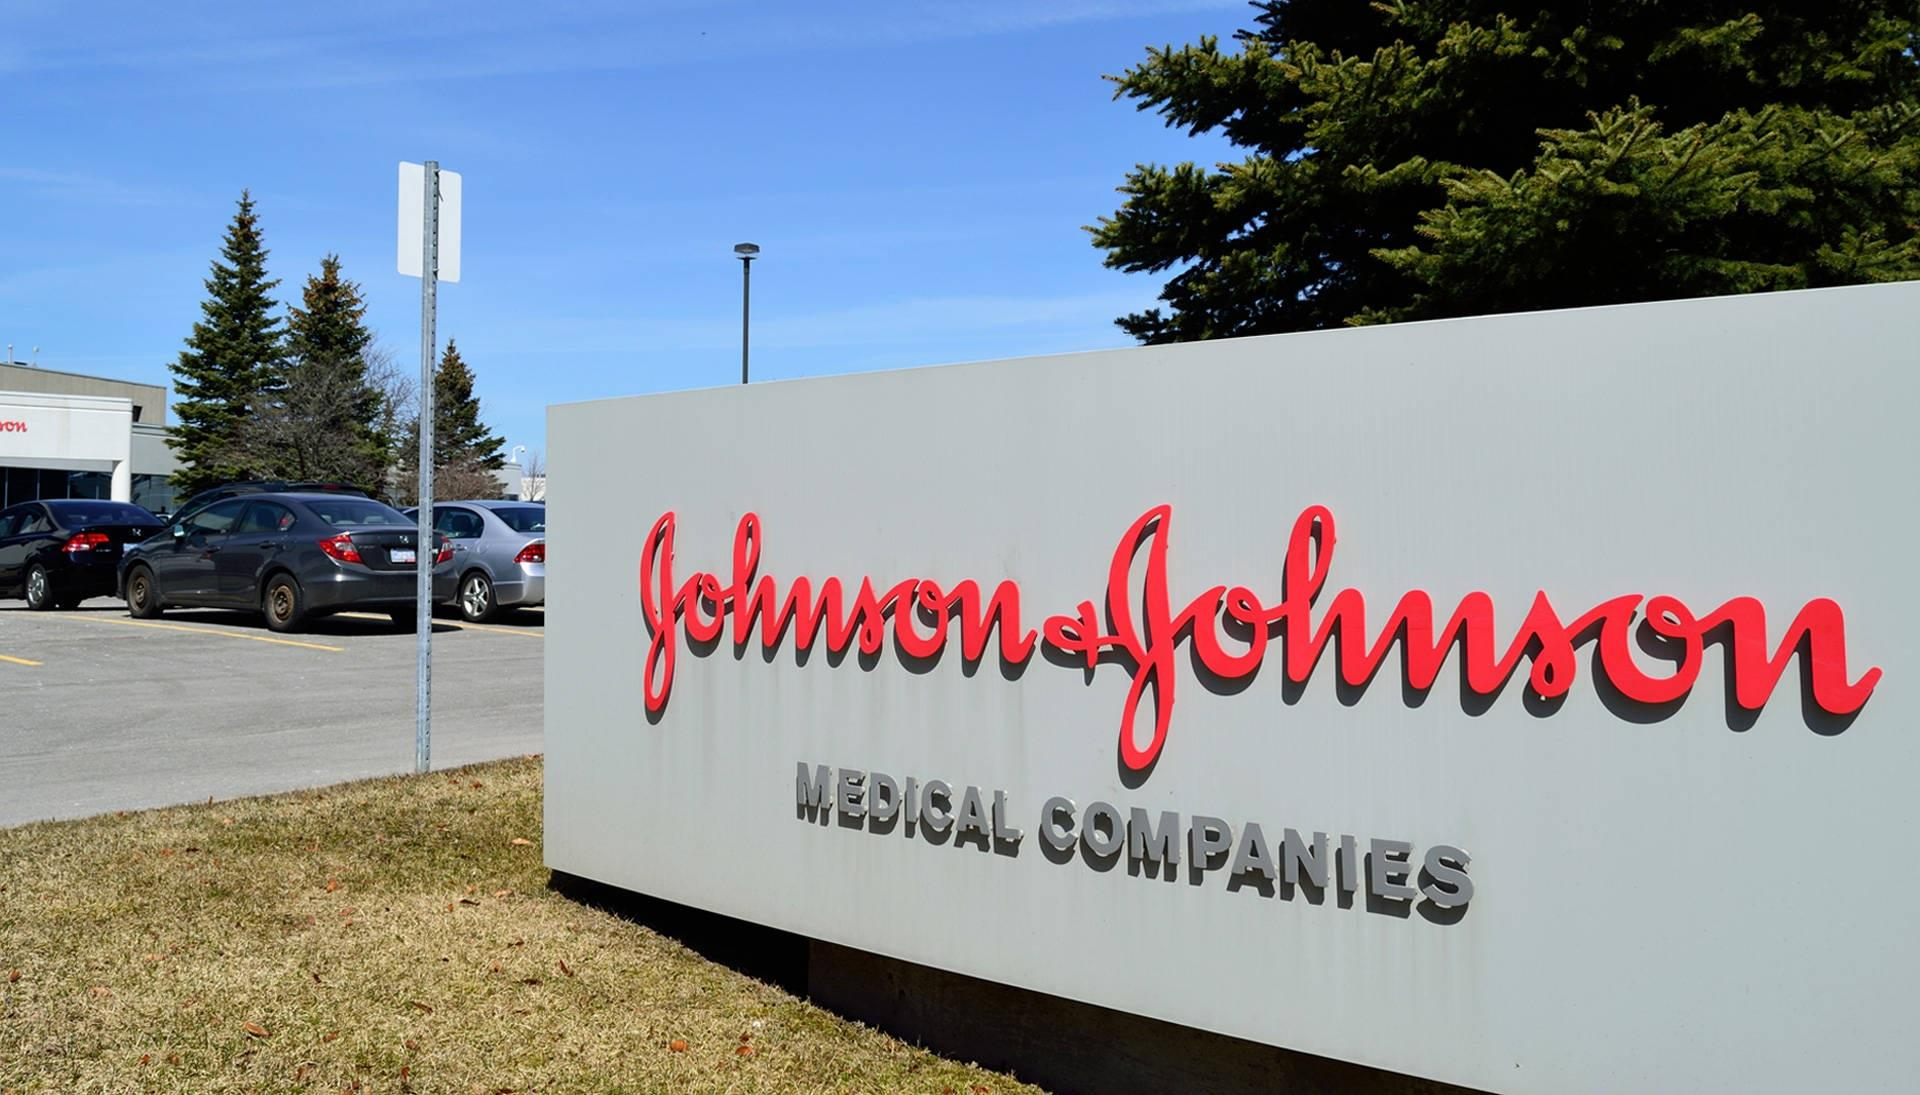 Johnson & Johnson's (NYSE:JNJ) Outperform Rating Reaffirmed at Wells Fargo